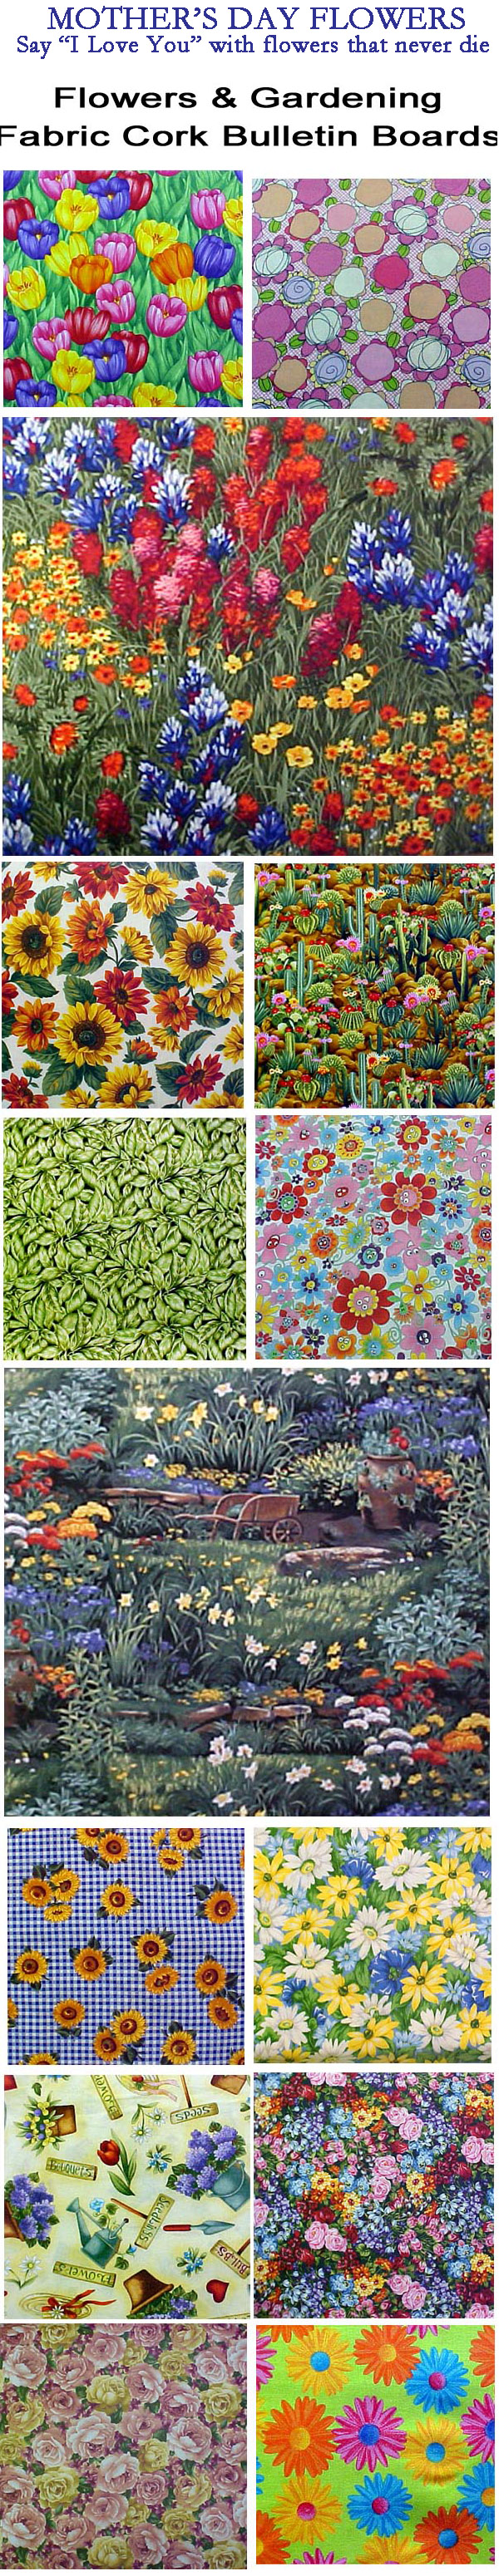 Mothers and flowers are appropriate. Give her a beautiful fabric covered cork bulletin board of flowers to brighten up her day every day and top it off with matching flower decorative push pins. at http://www.PushPinsAndFabricCorkBoards.com